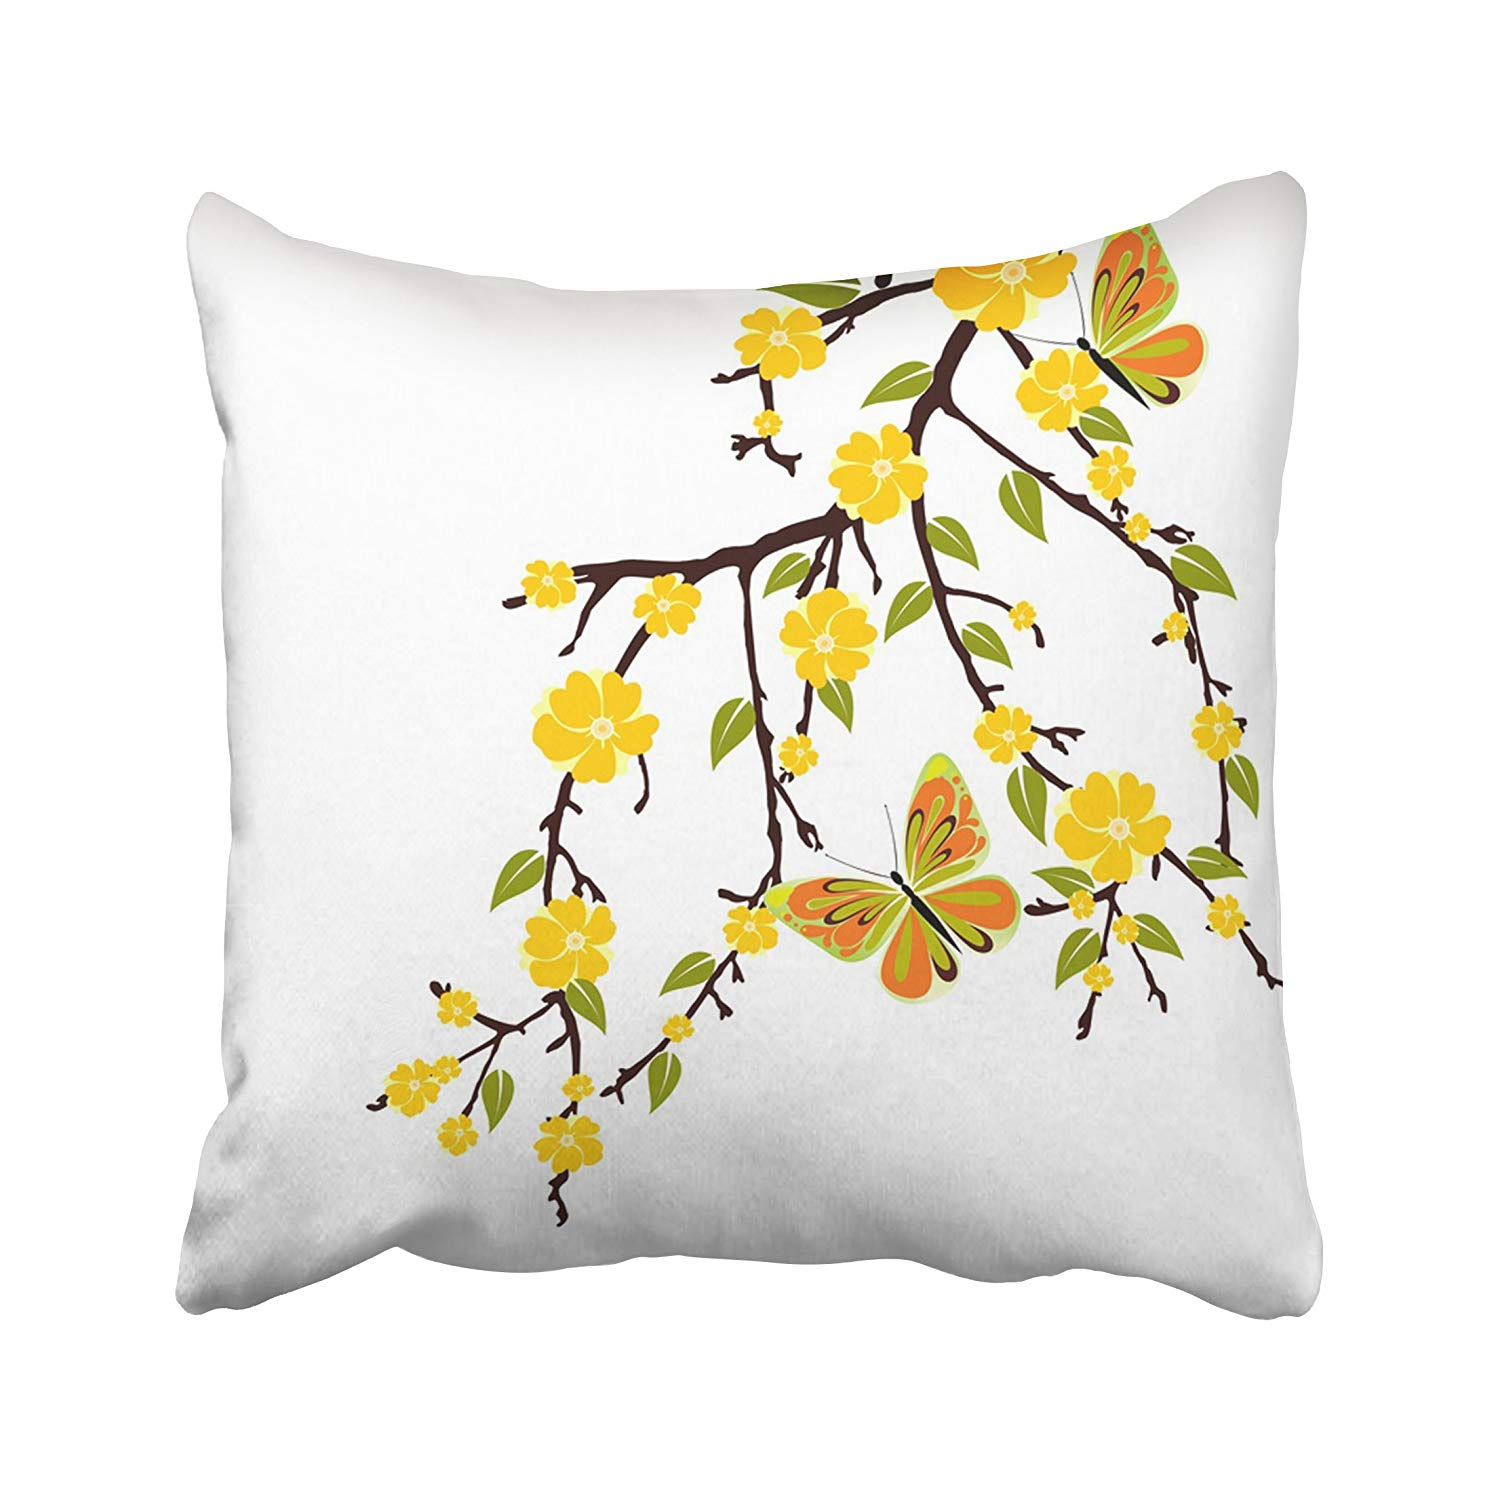 BPBOP Colorful Flower Yellow Blossom Stem Branch Tree Beauty Border Bright Bush Pillowcase Pillow Cushion Cover 18x18 inches